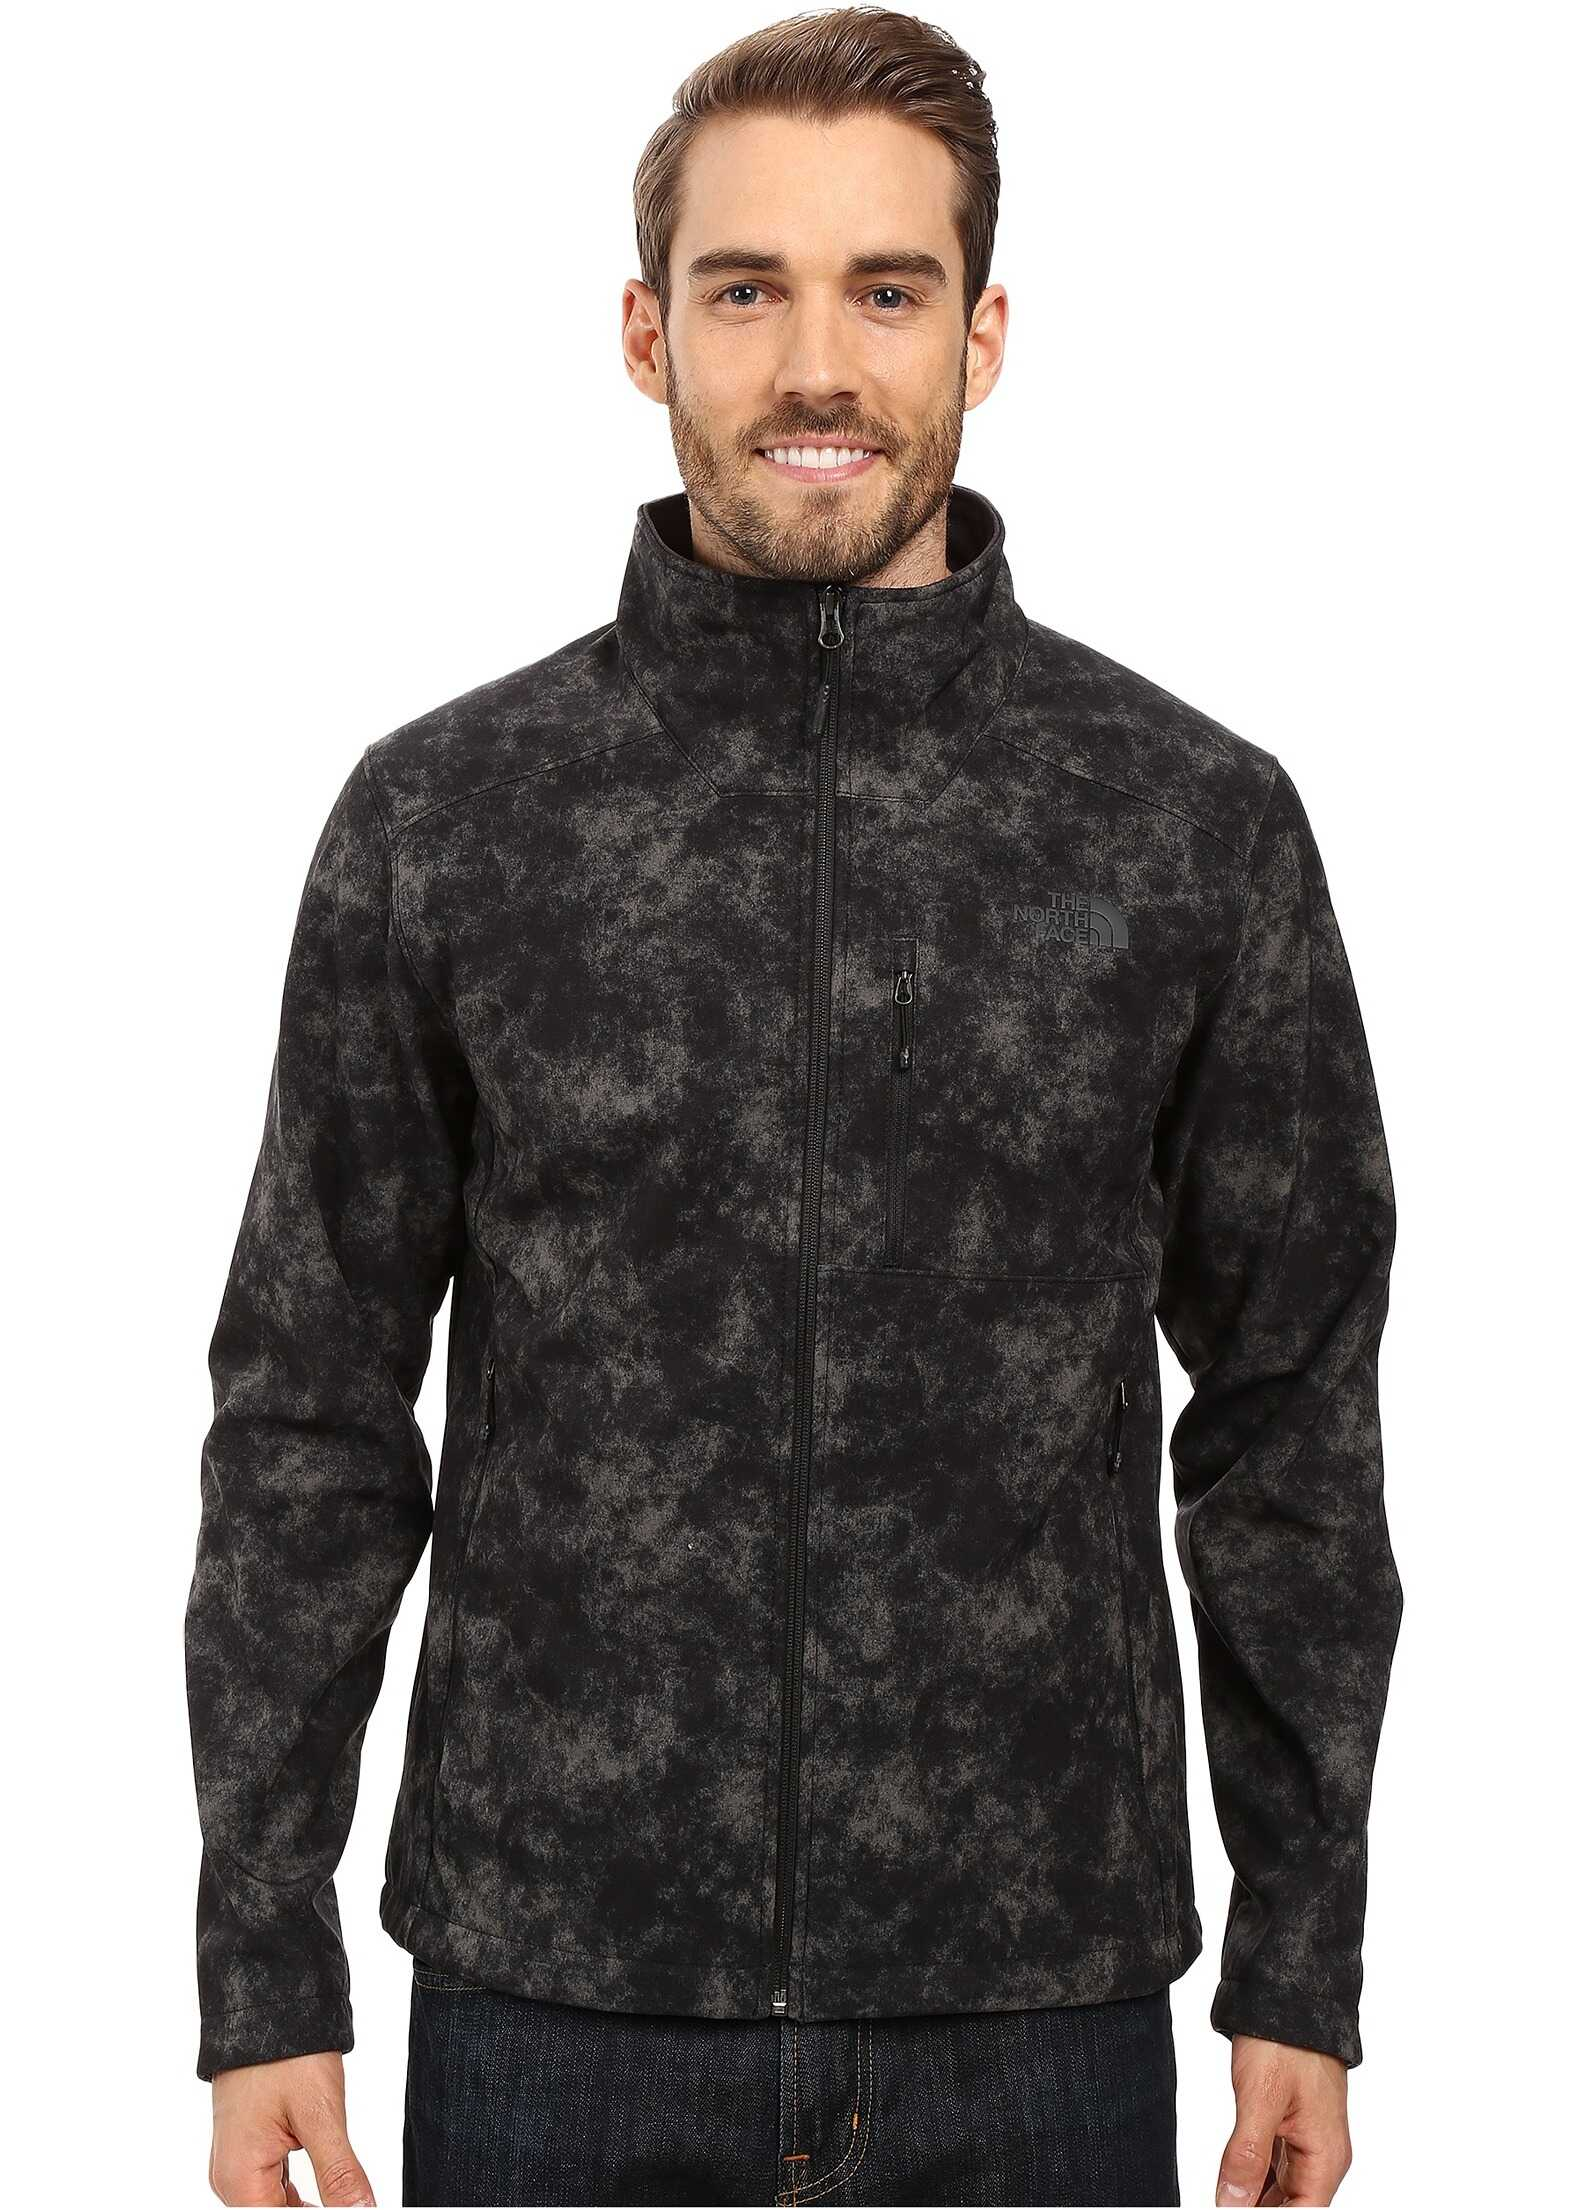 The North Face Apex Bionic 2 Jacket Asphalt Grey Process Print (Prior Season)